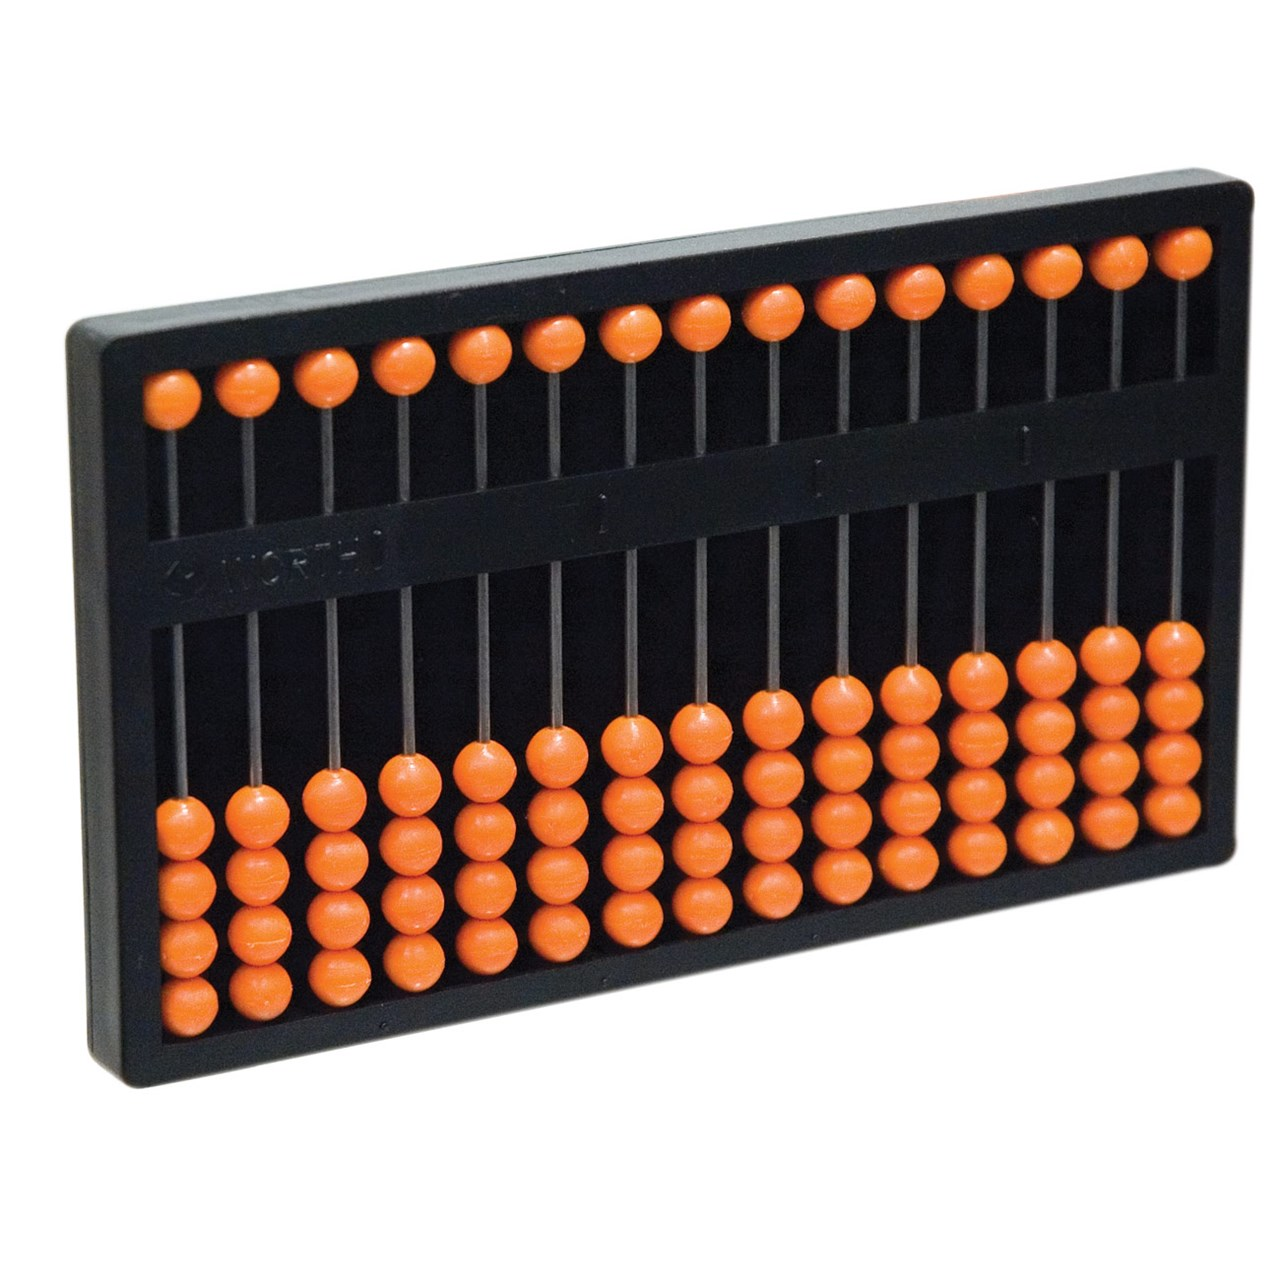 Image result for abacus